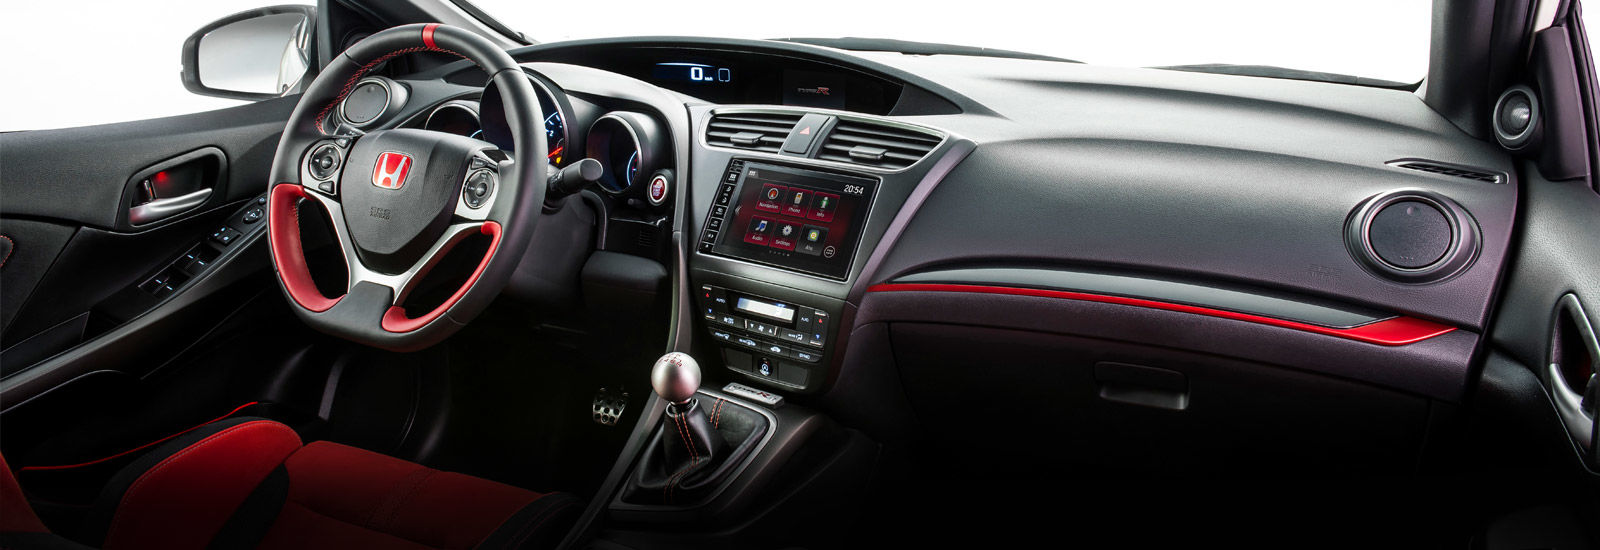 honda civic type r new vs old compared carwow. Black Bedroom Furniture Sets. Home Design Ideas